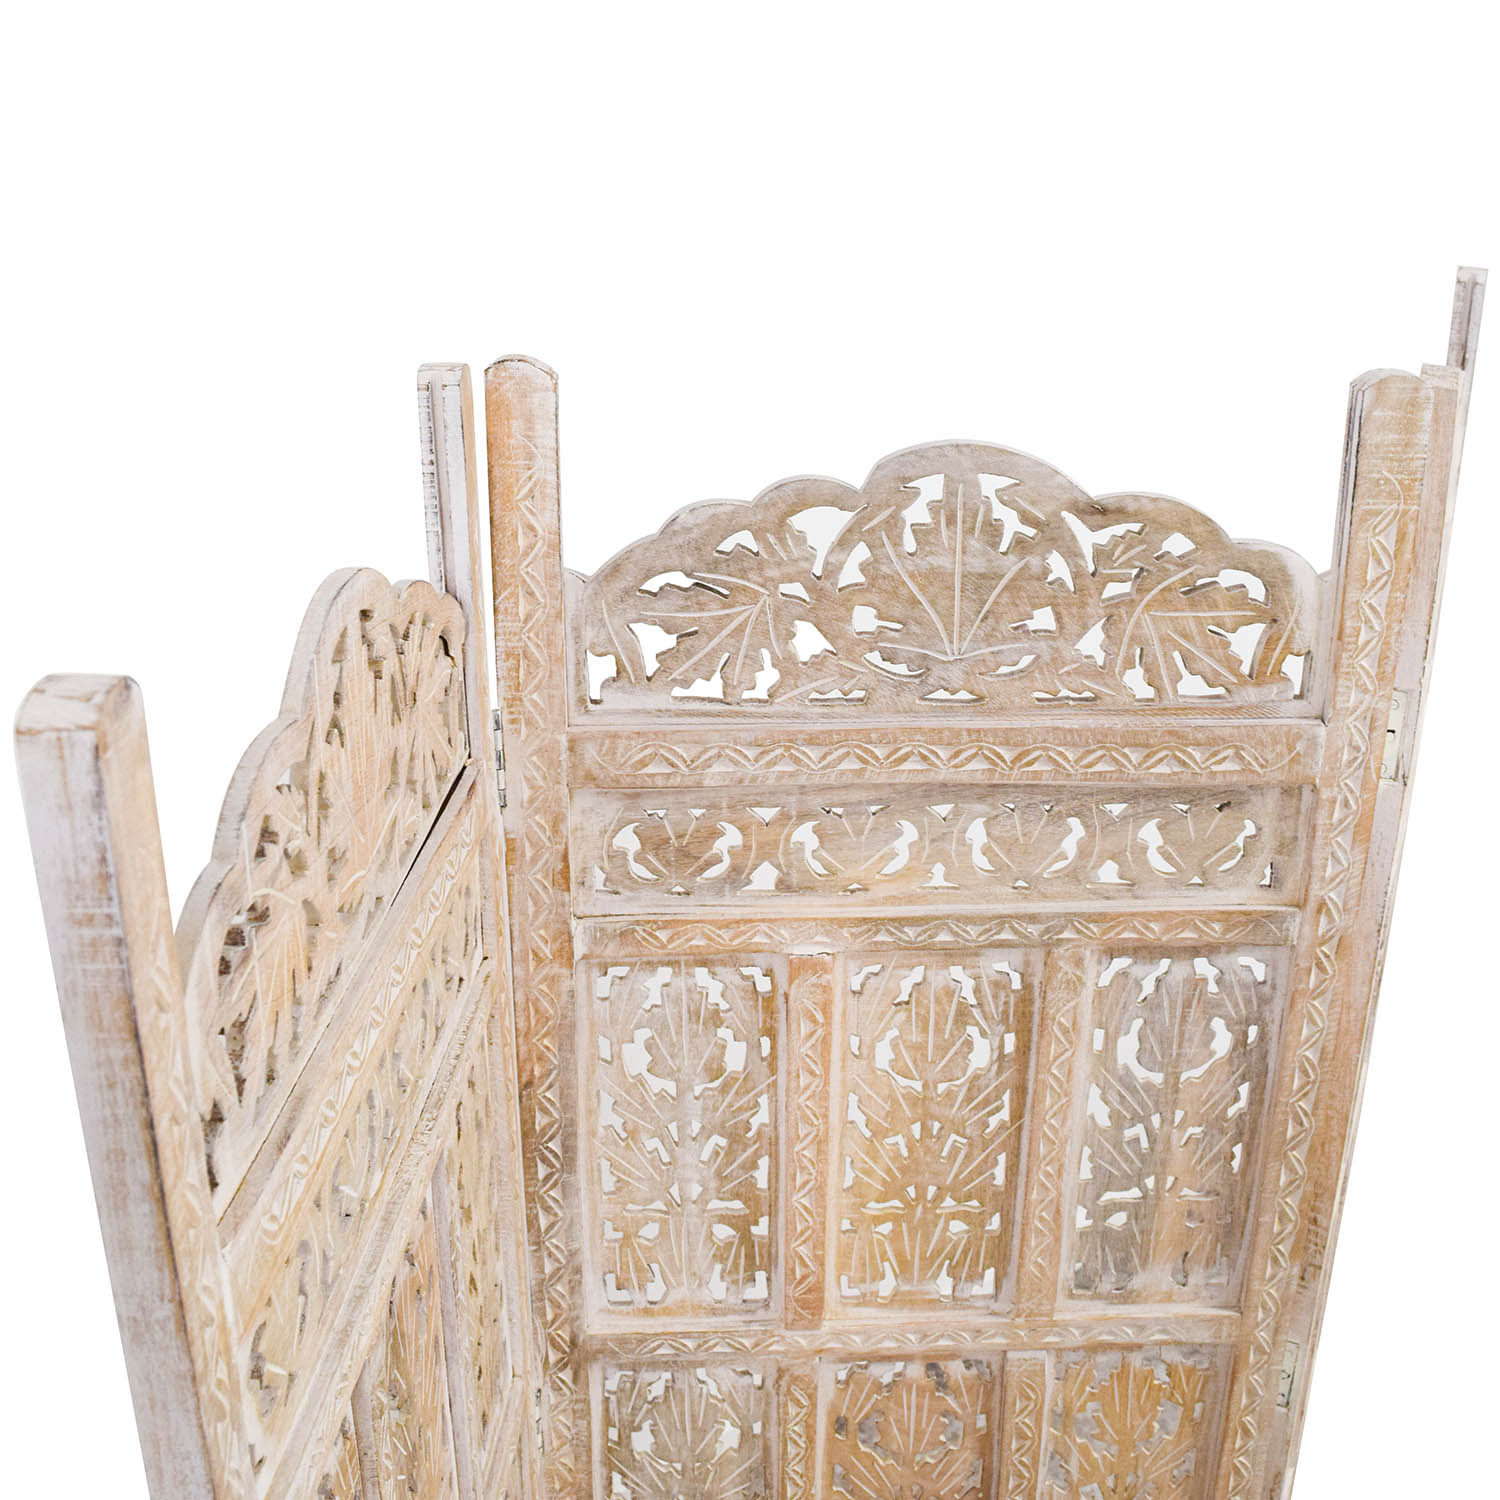 Ornate Screen Divider used